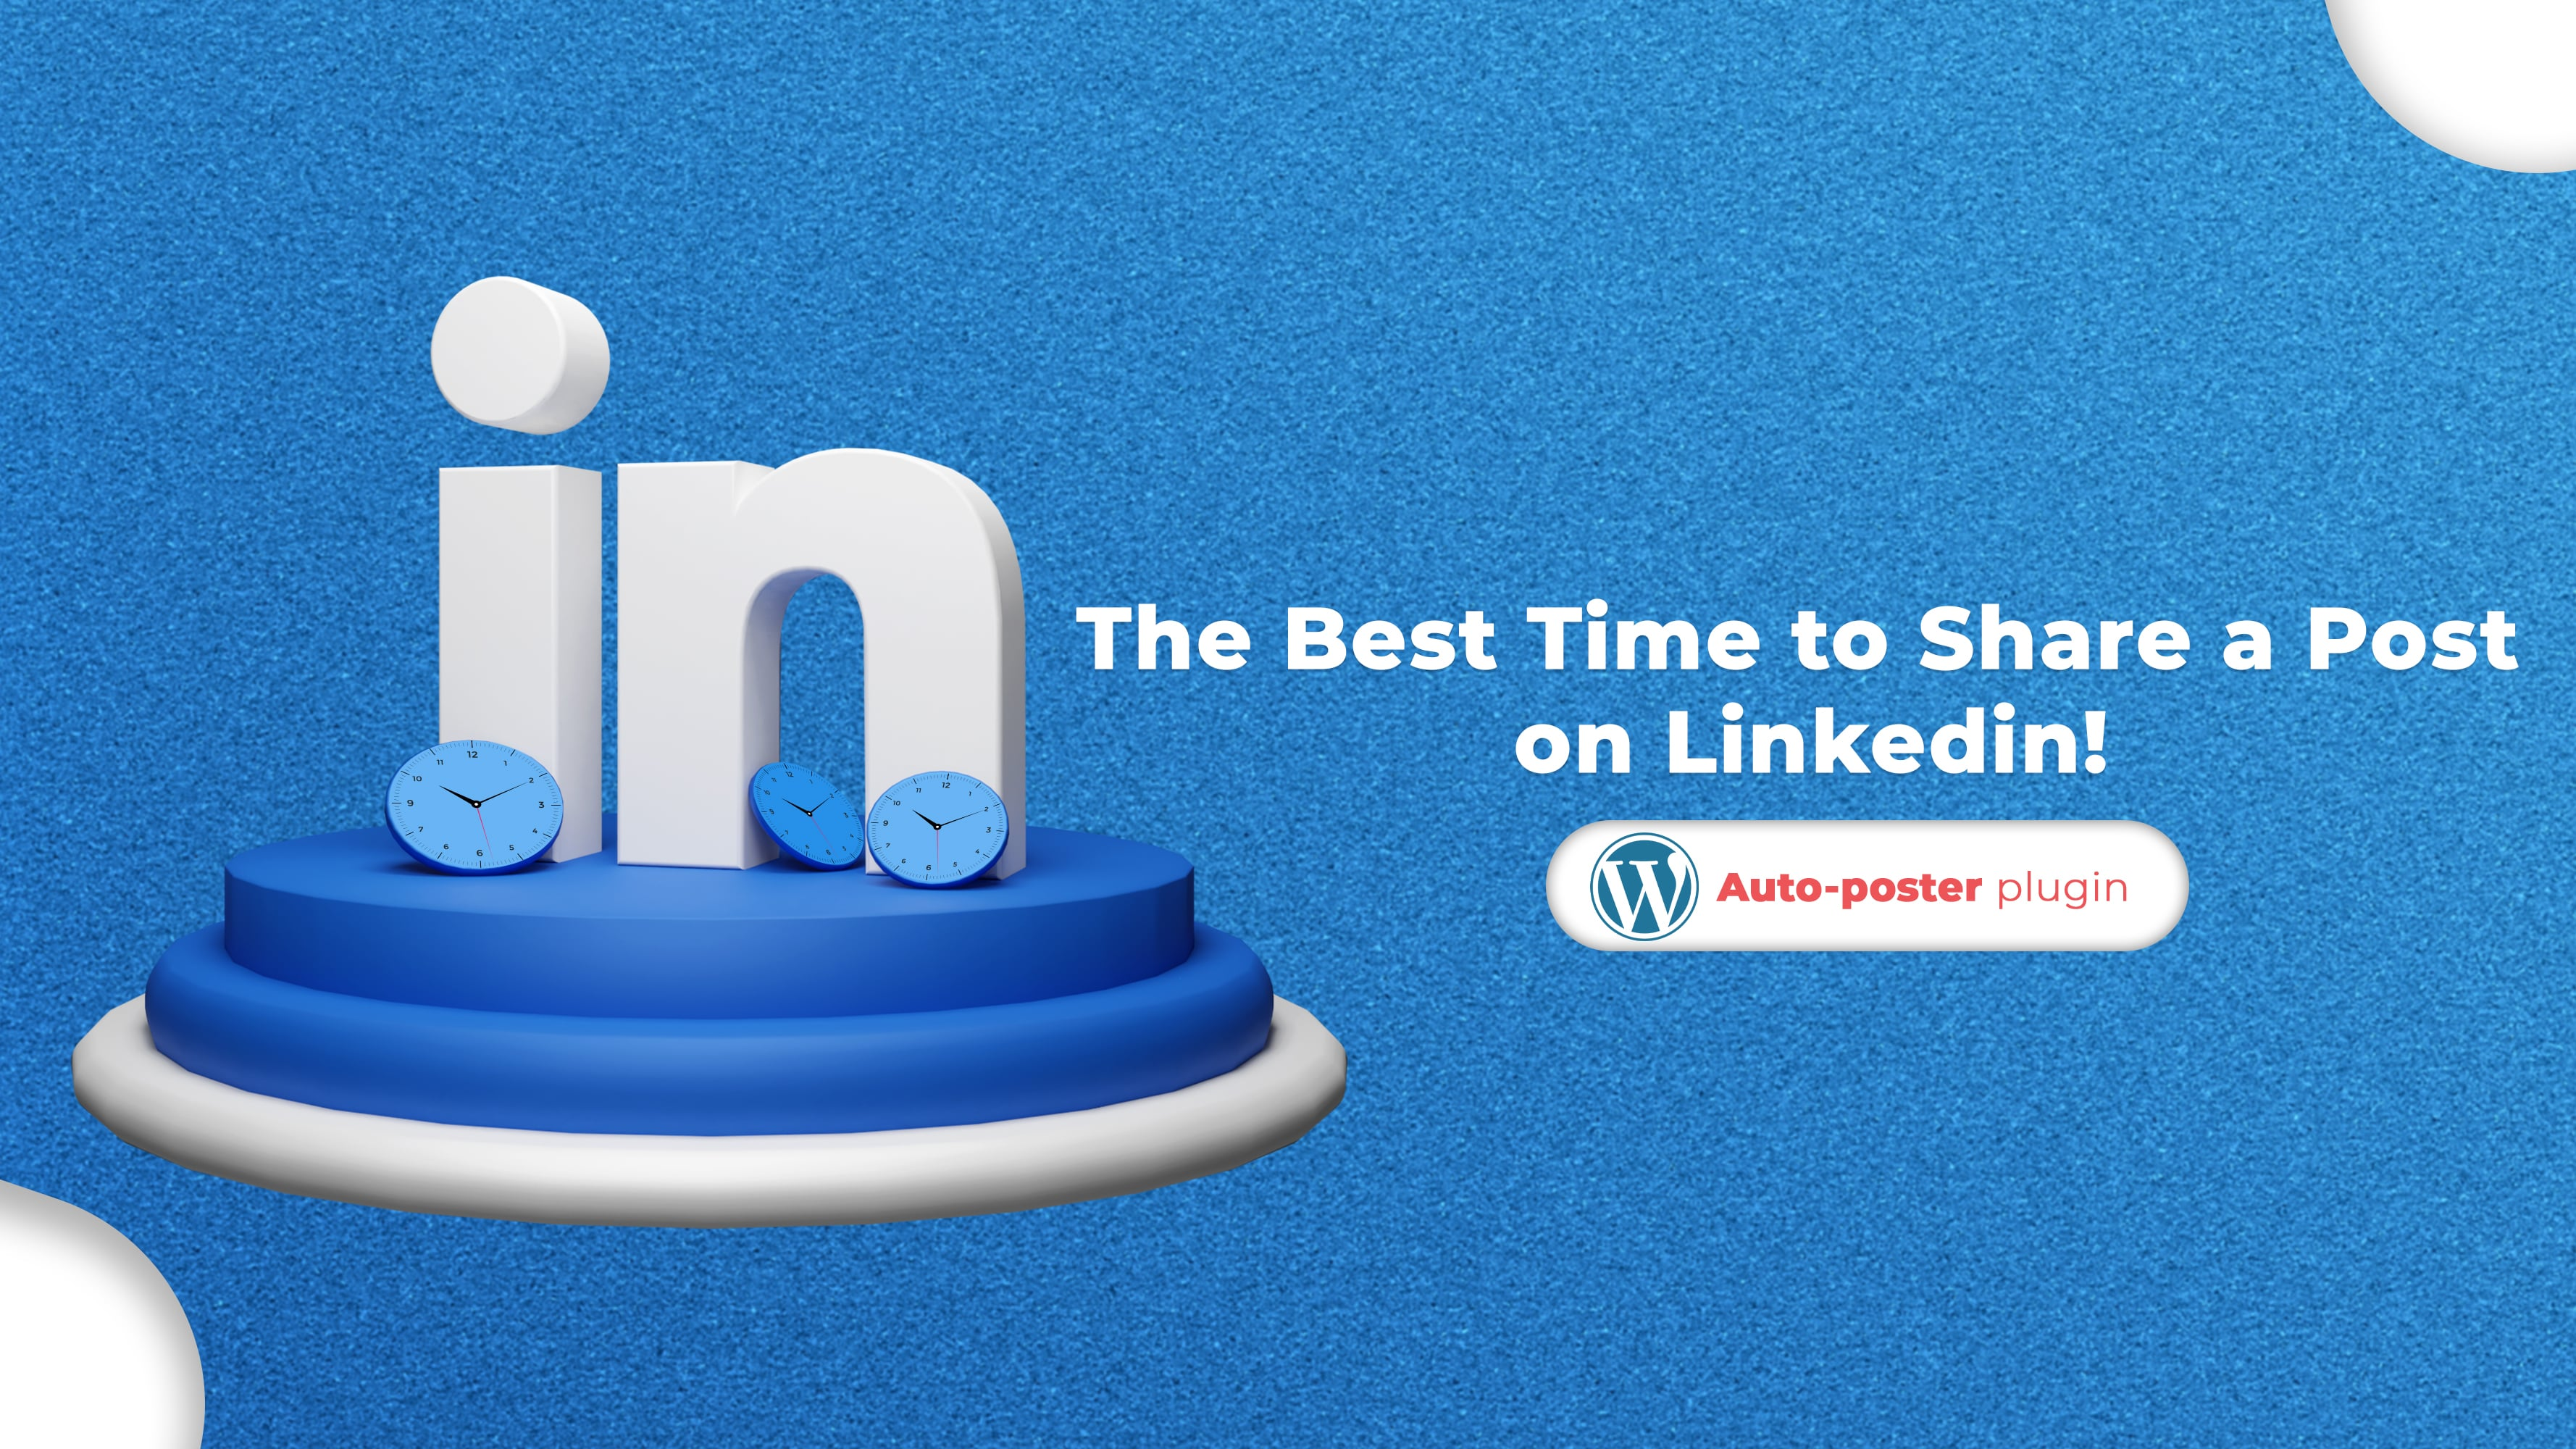 The Best Time to Share a Post on LinkedIn in 2021